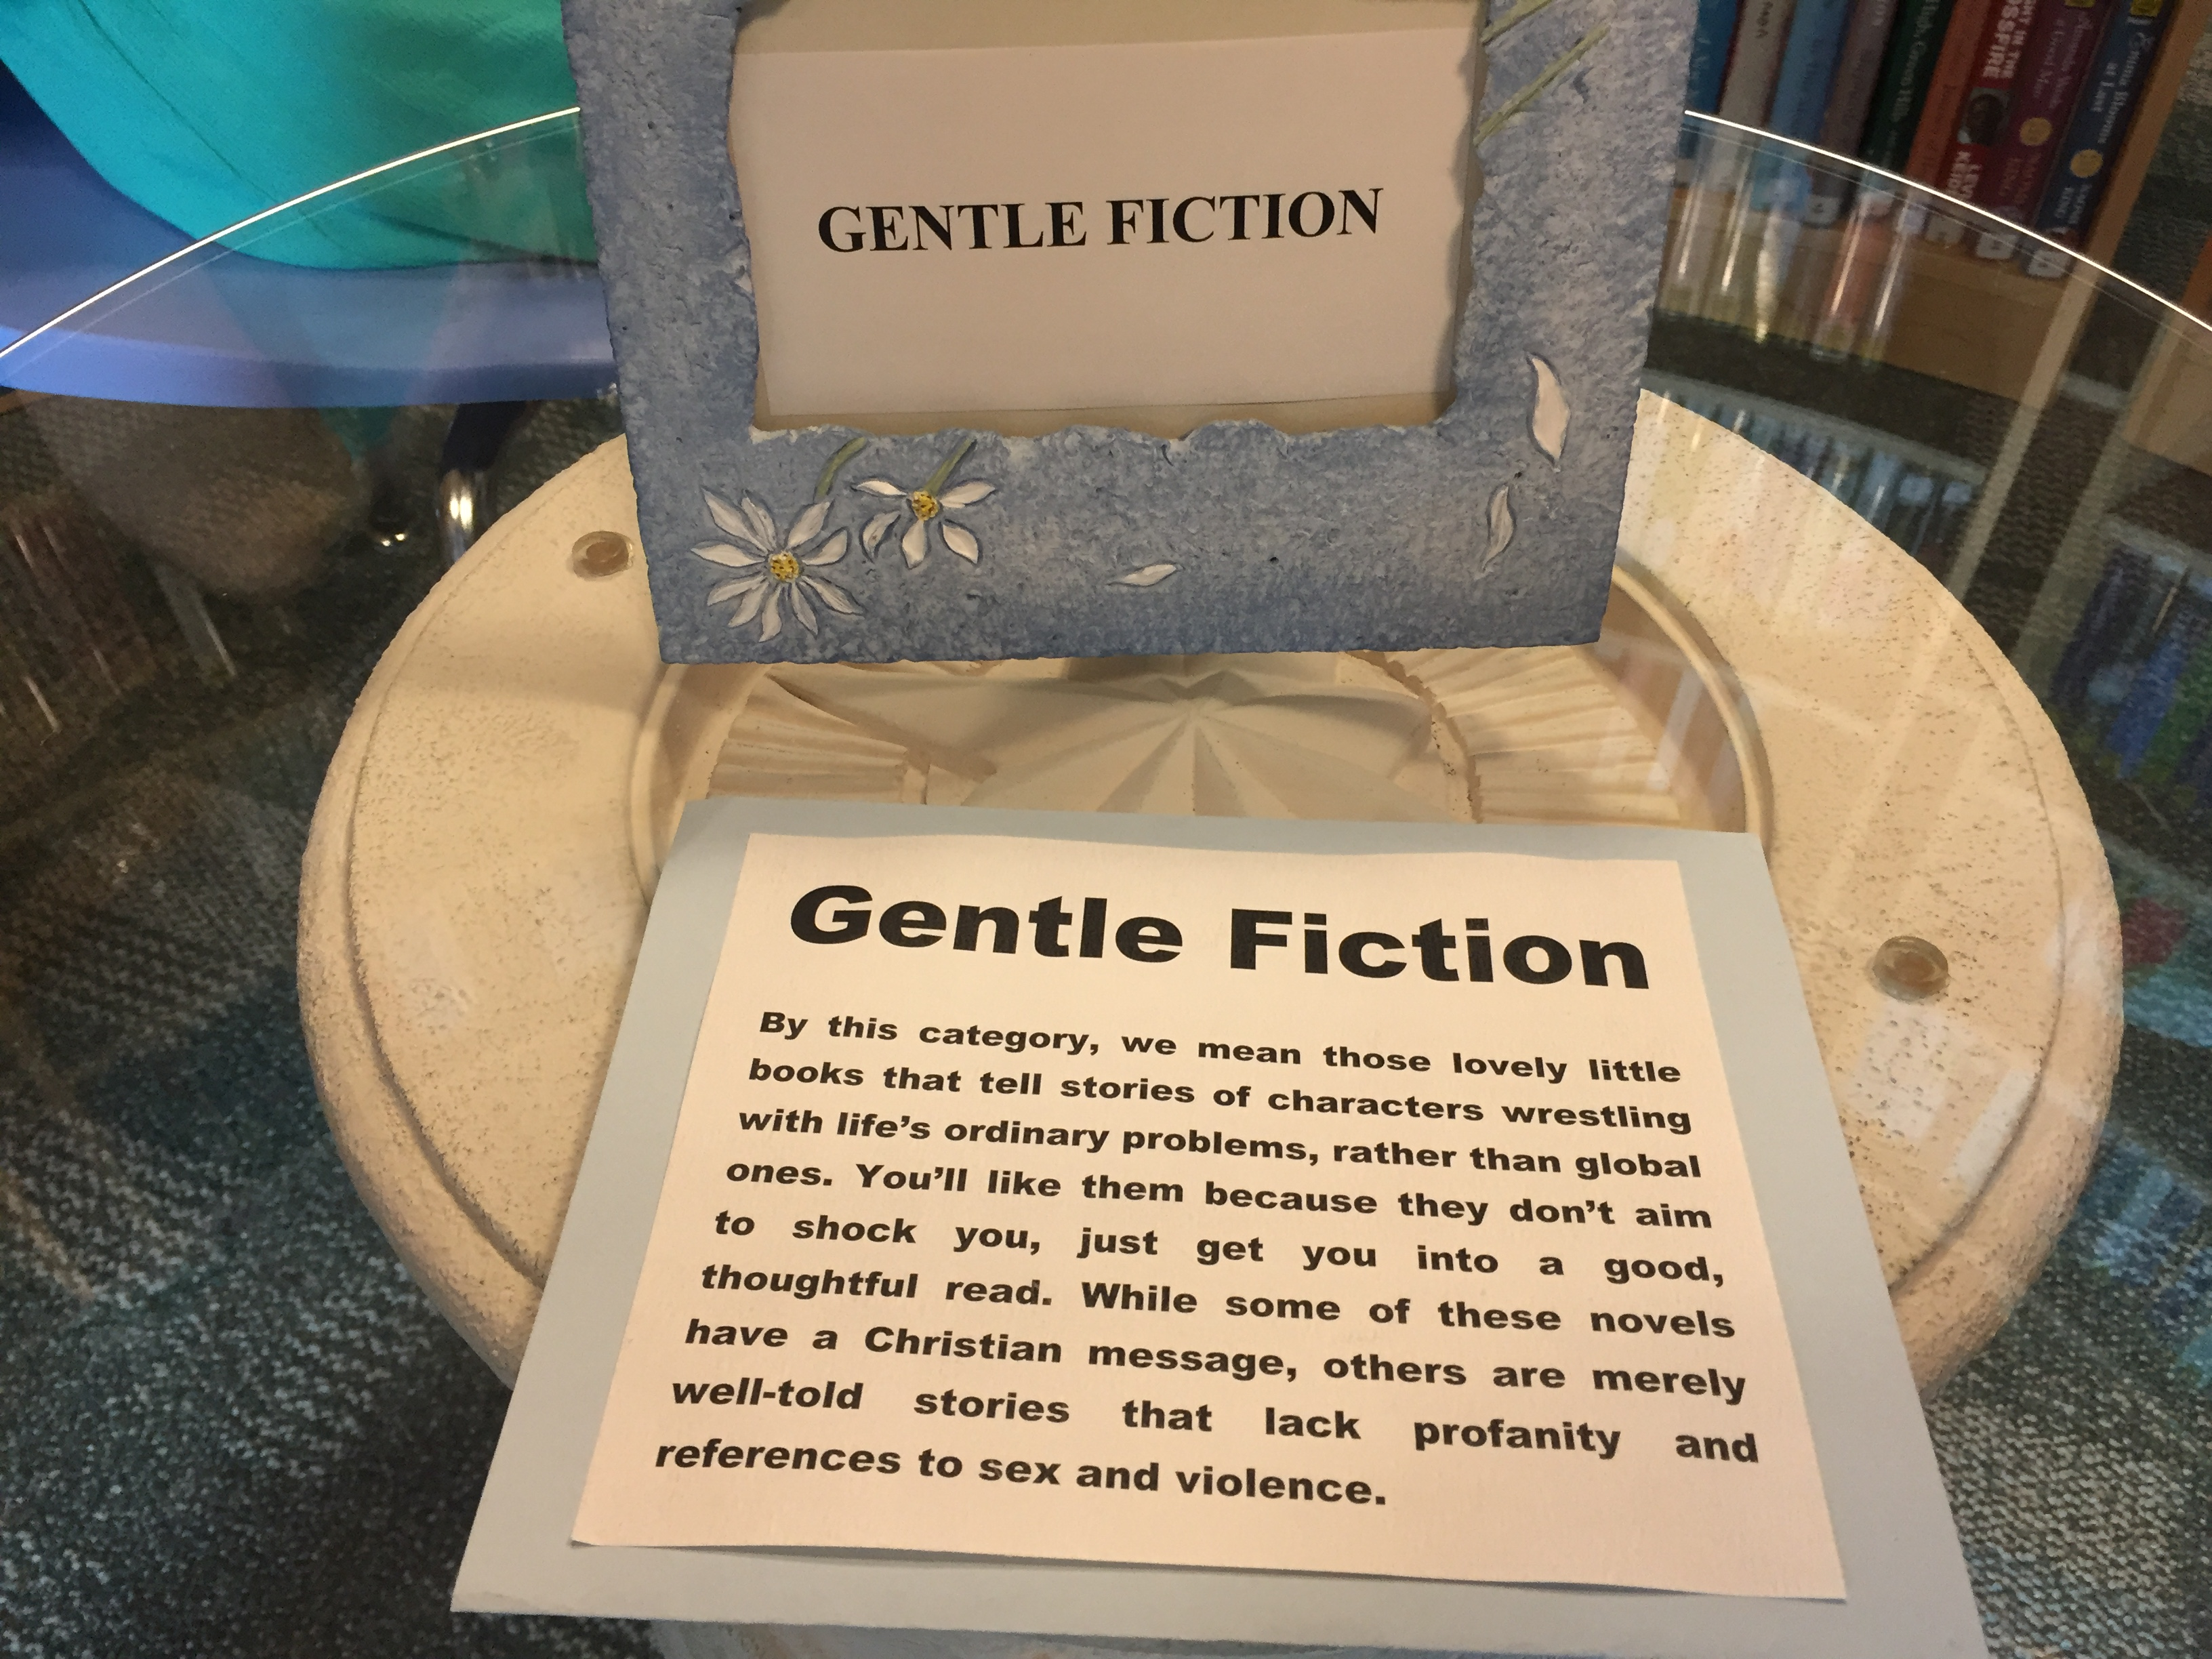 I totally wish all libraries had a section like this. It's a great idea.